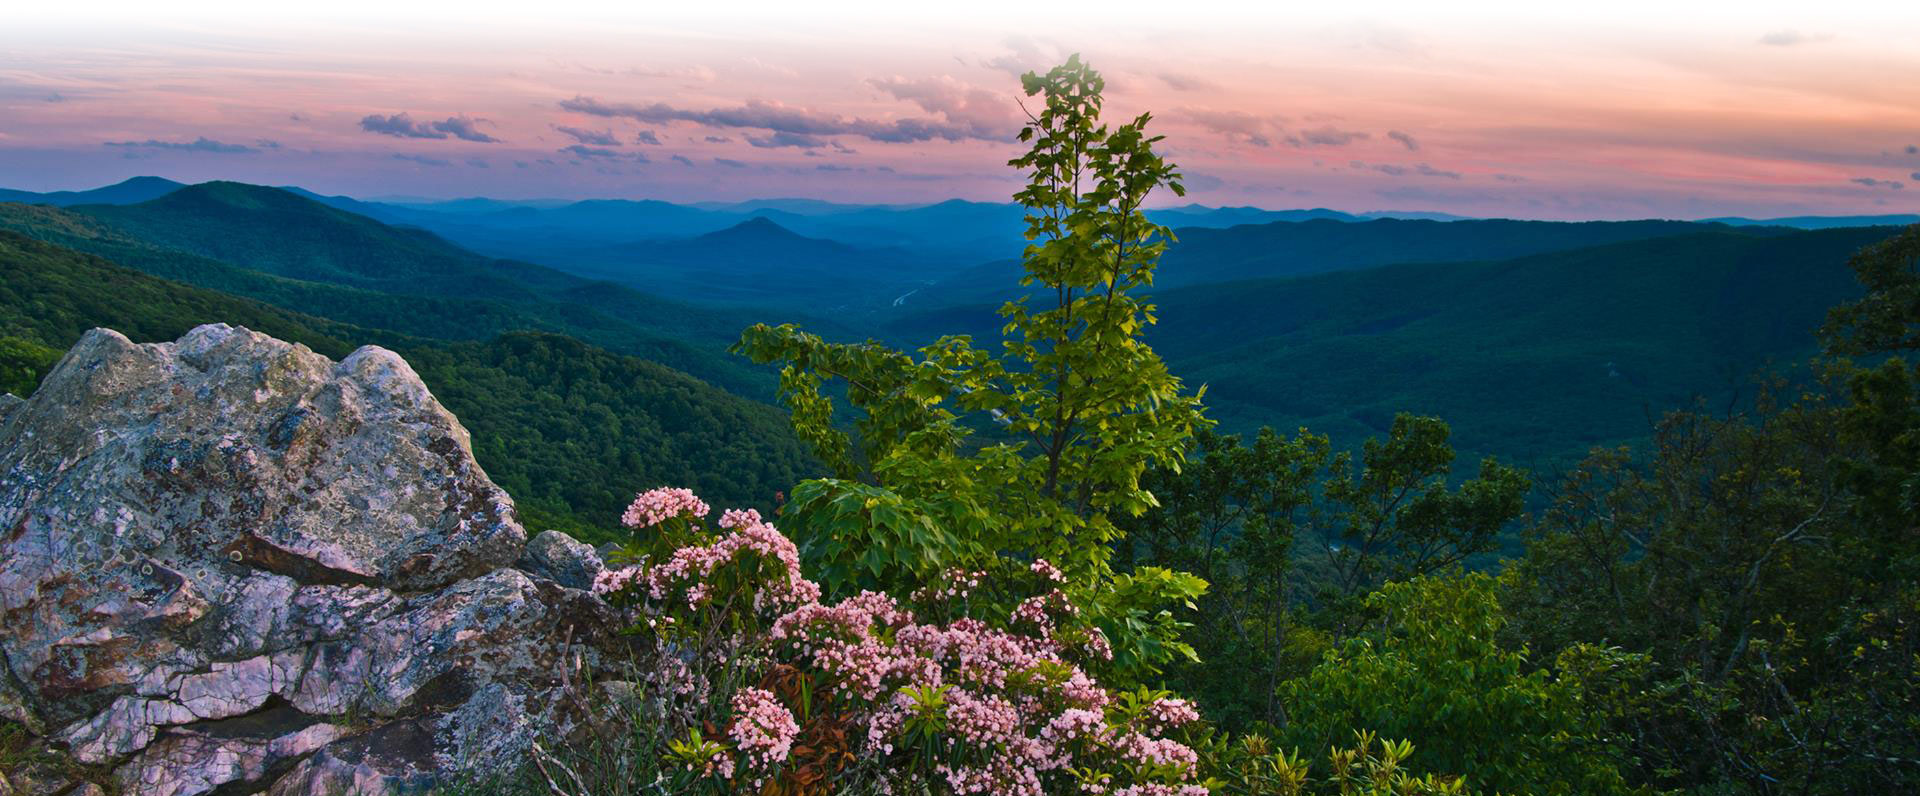 Home - Alleghany Highlands Chamber of Commerce and Tourism